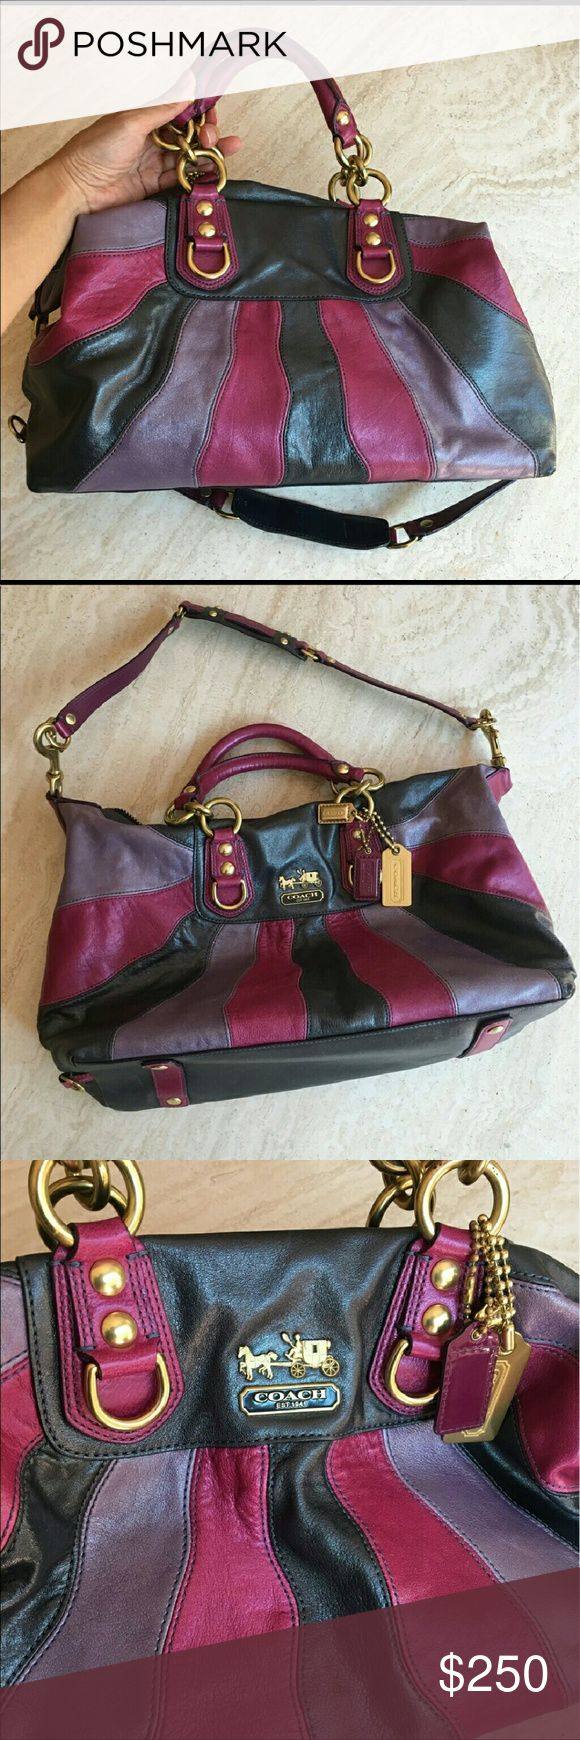 Limited edition large Sabrina Coach bag Rare coach pursue, leather ombre, large Sabrina, stunning limited edition from Sabrina collection. Beautifully crafted leather In shades of fuschia and purple. Multifunctional pockets. One large zipper compartment and gold creed patch inside. Brass hardware, zipper top closure, handles and removable shoulder strap. Also comes with three Coach hang tags. Never been used and in pristine condition! No dust bag. Style number 12952. Approximately 18x11.5 in…